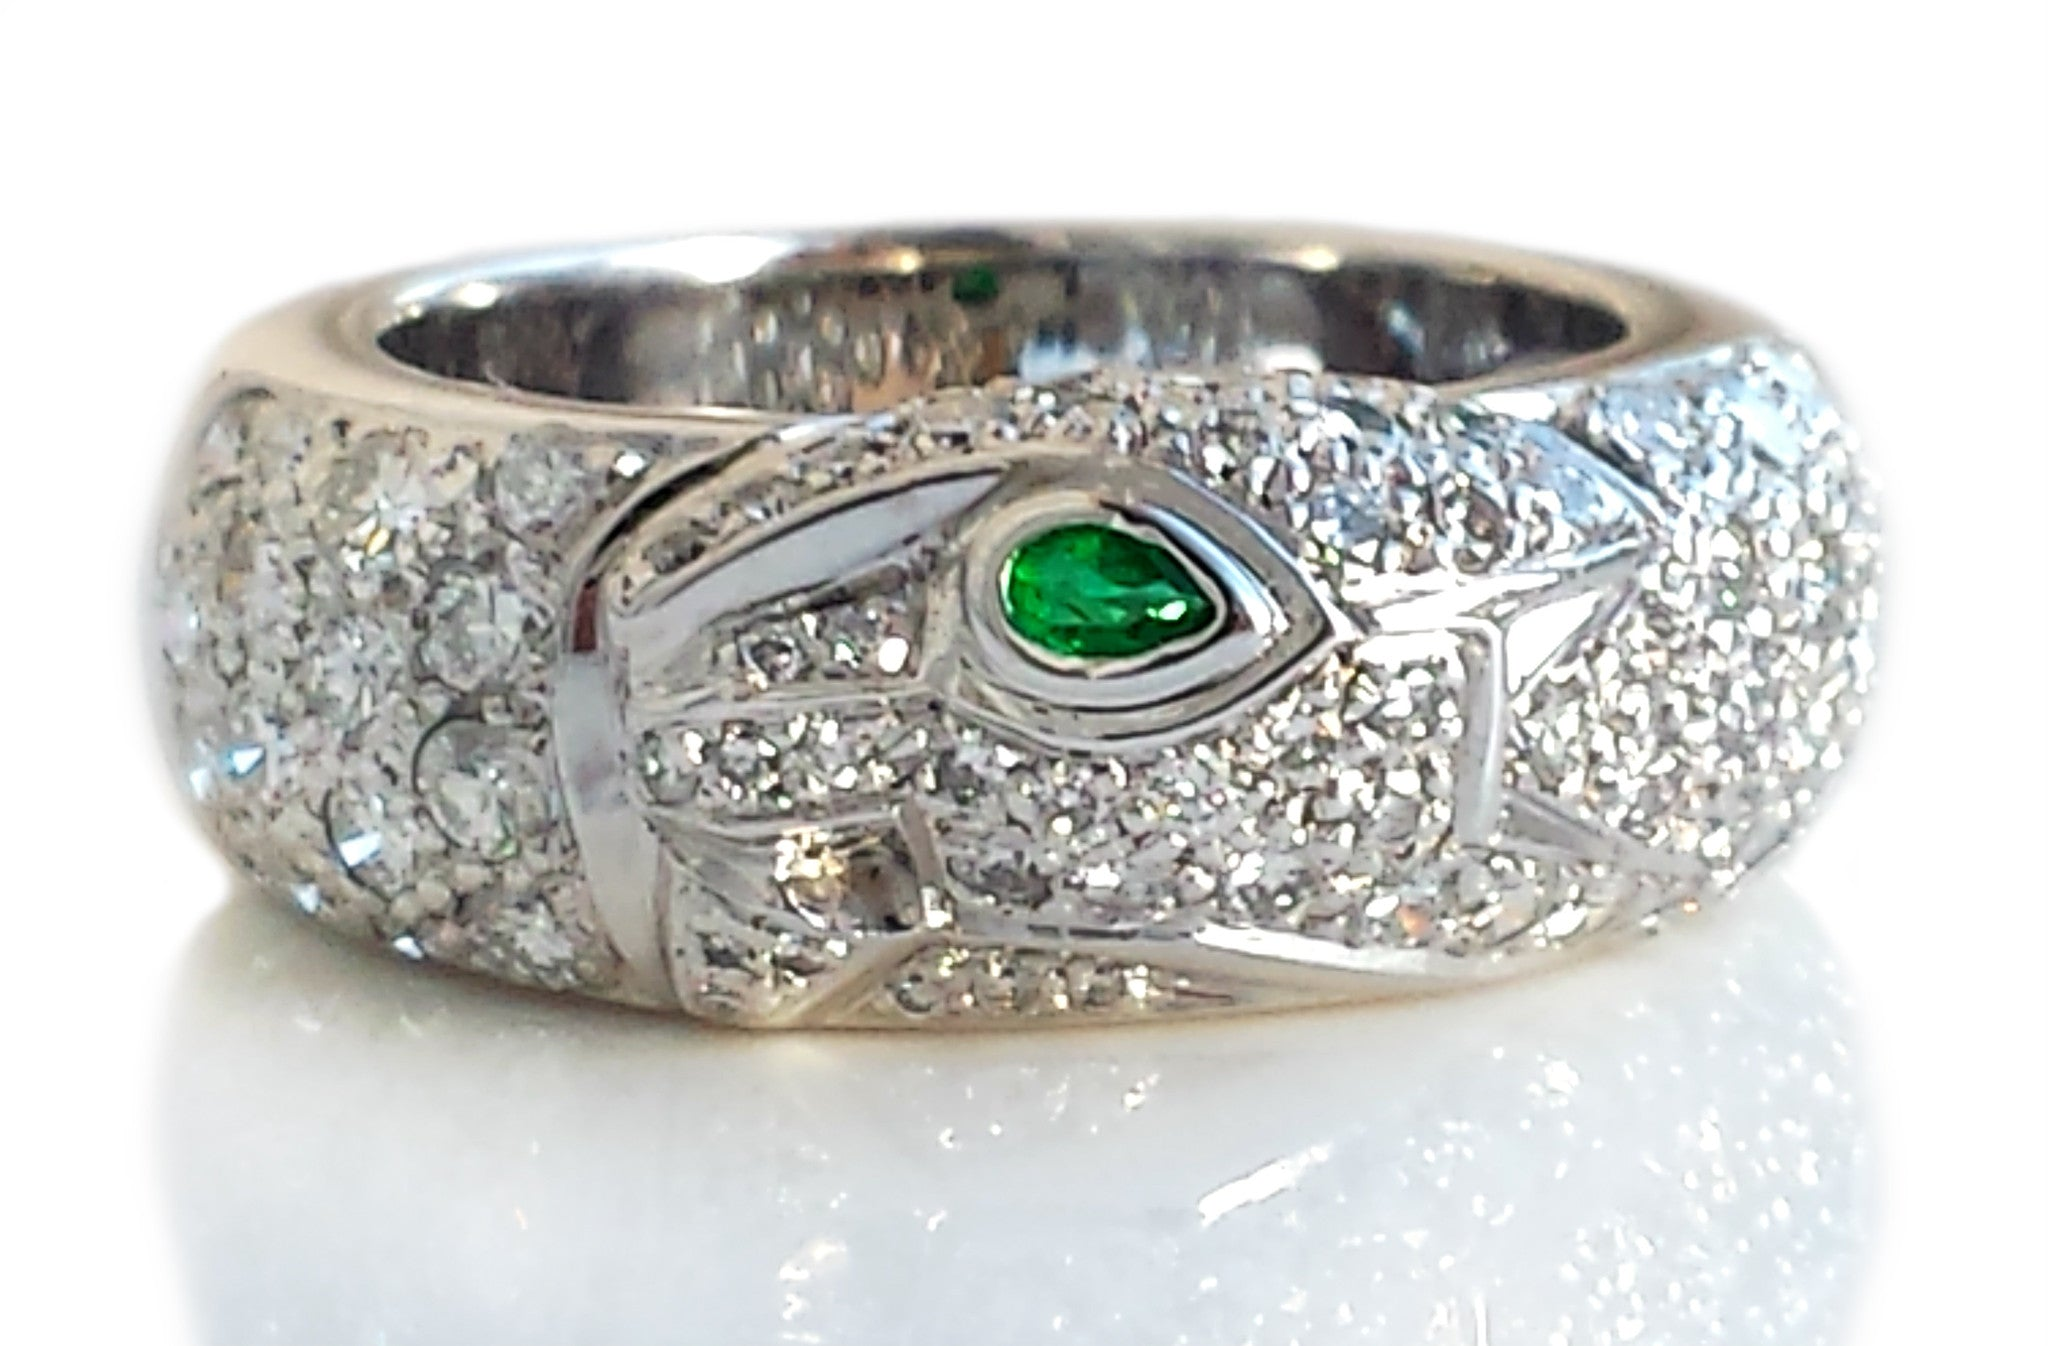 panther listings diamond rings gold cartier jewelry emerald white onyx fashion ring